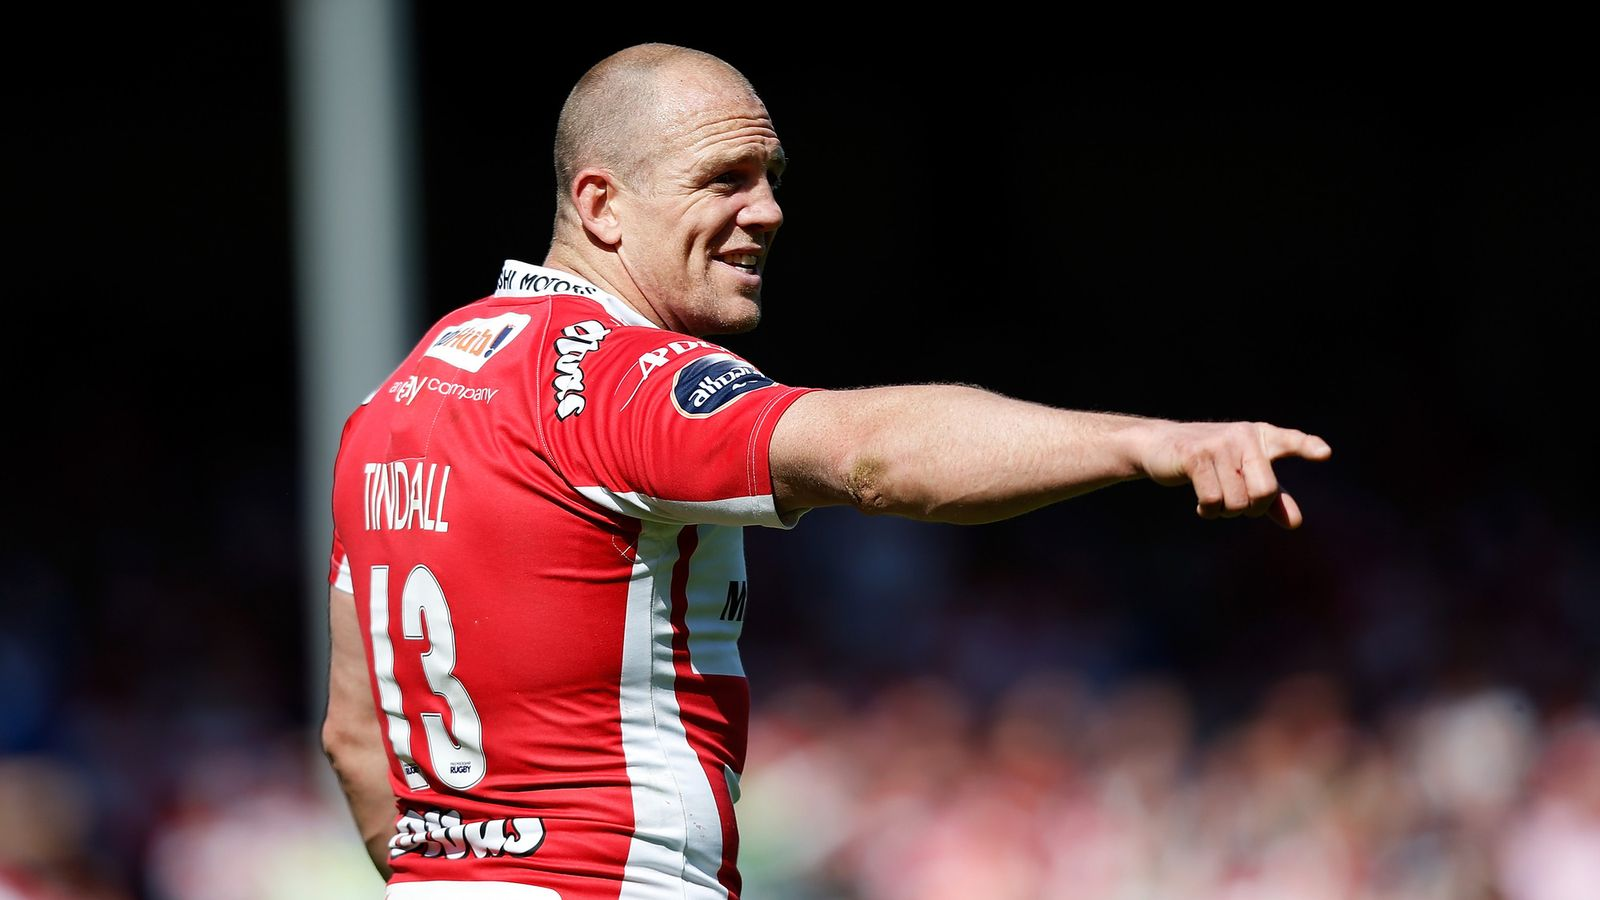 Aviva Premiership: Mike Tindall admits Gloucester future is in doubt ...